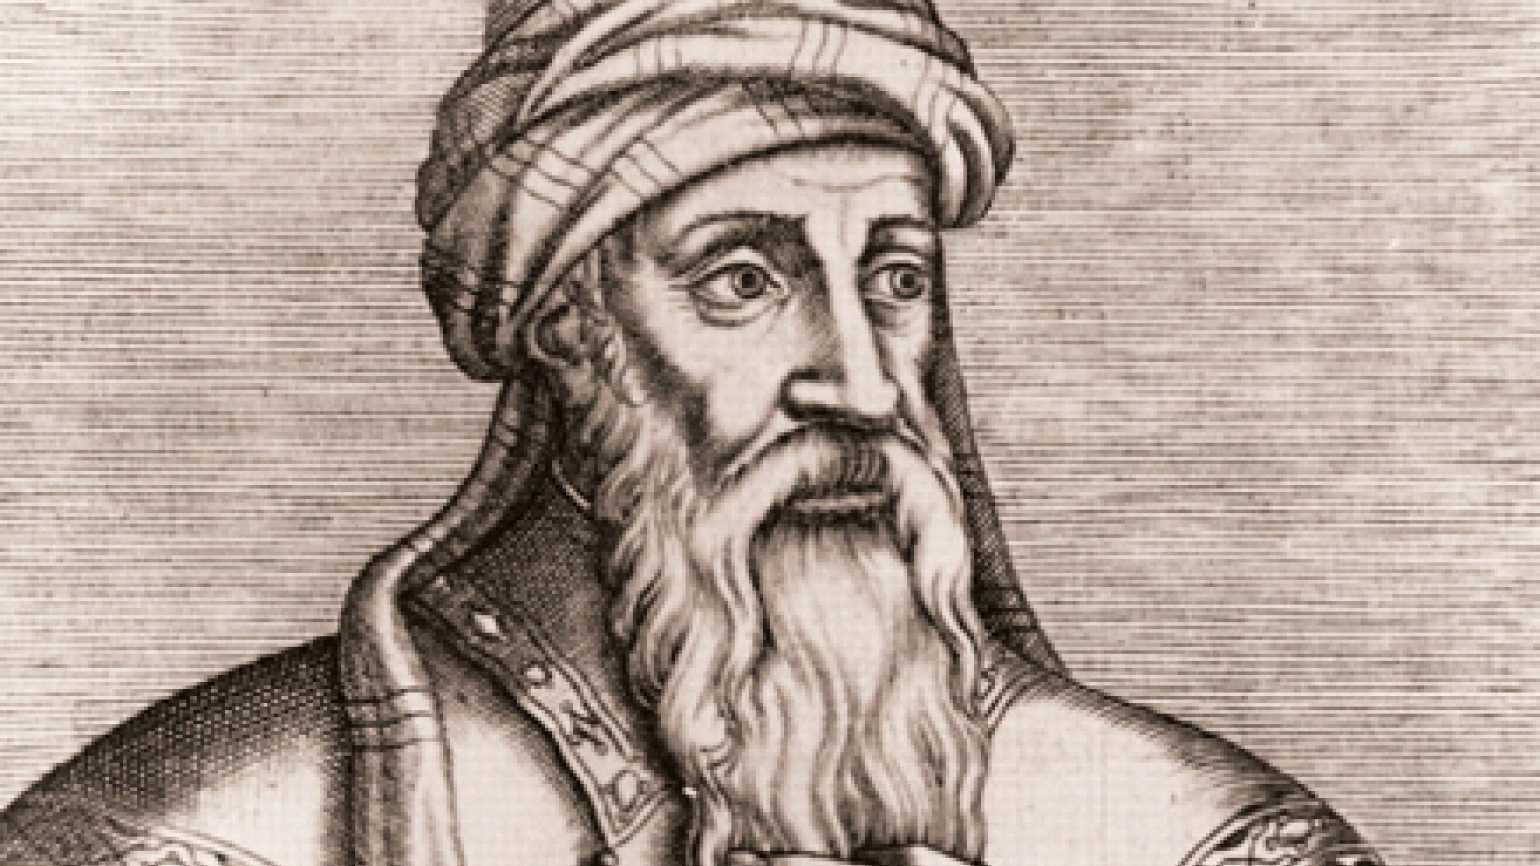 An artist's rendering of Moses Maimonides